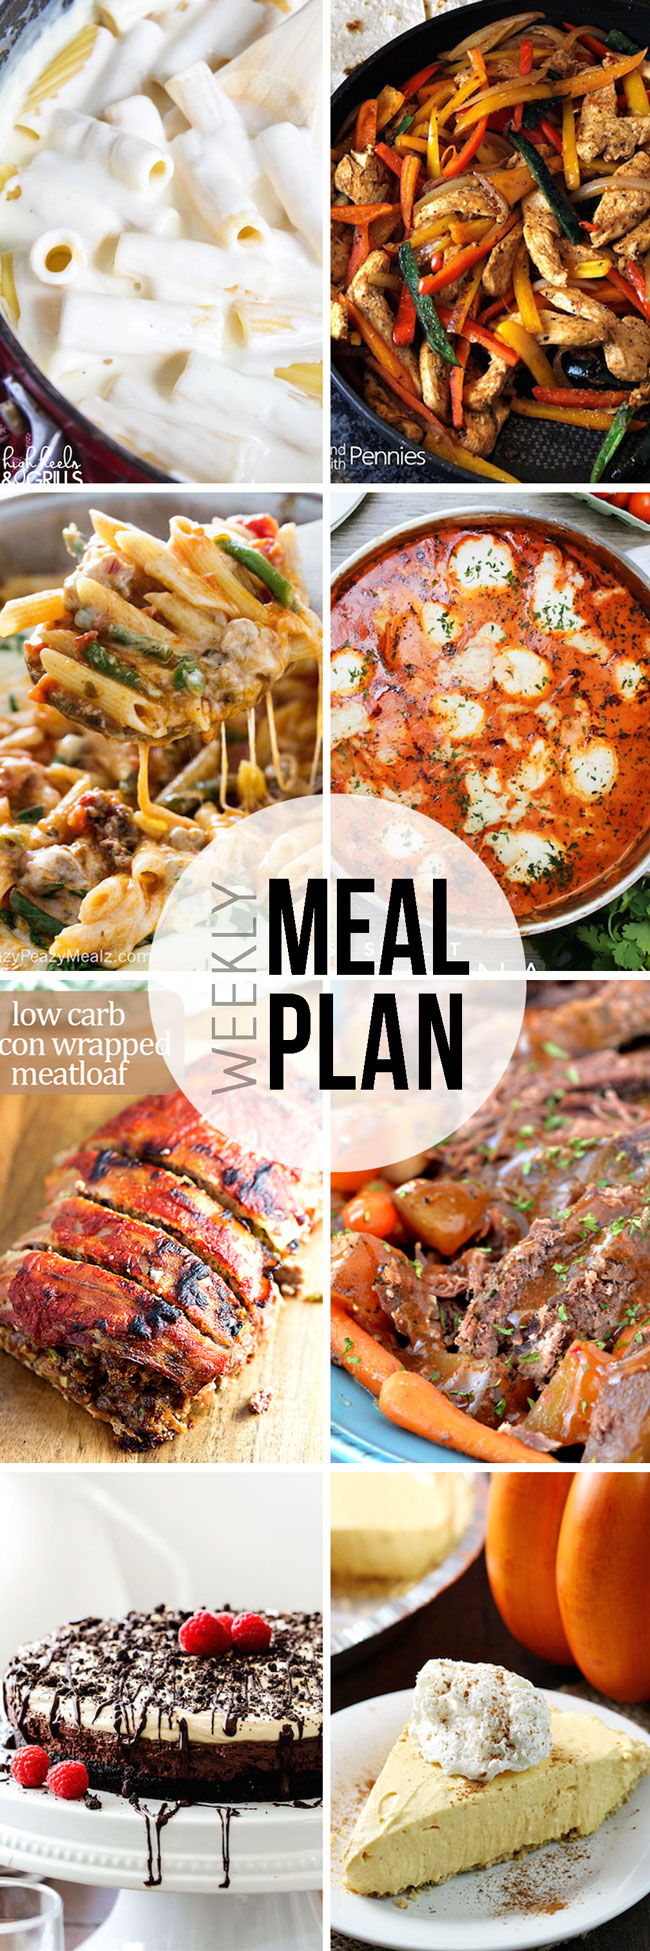 Easy Meal Plan: Make this week tasty with this tried and true collection of recipes.